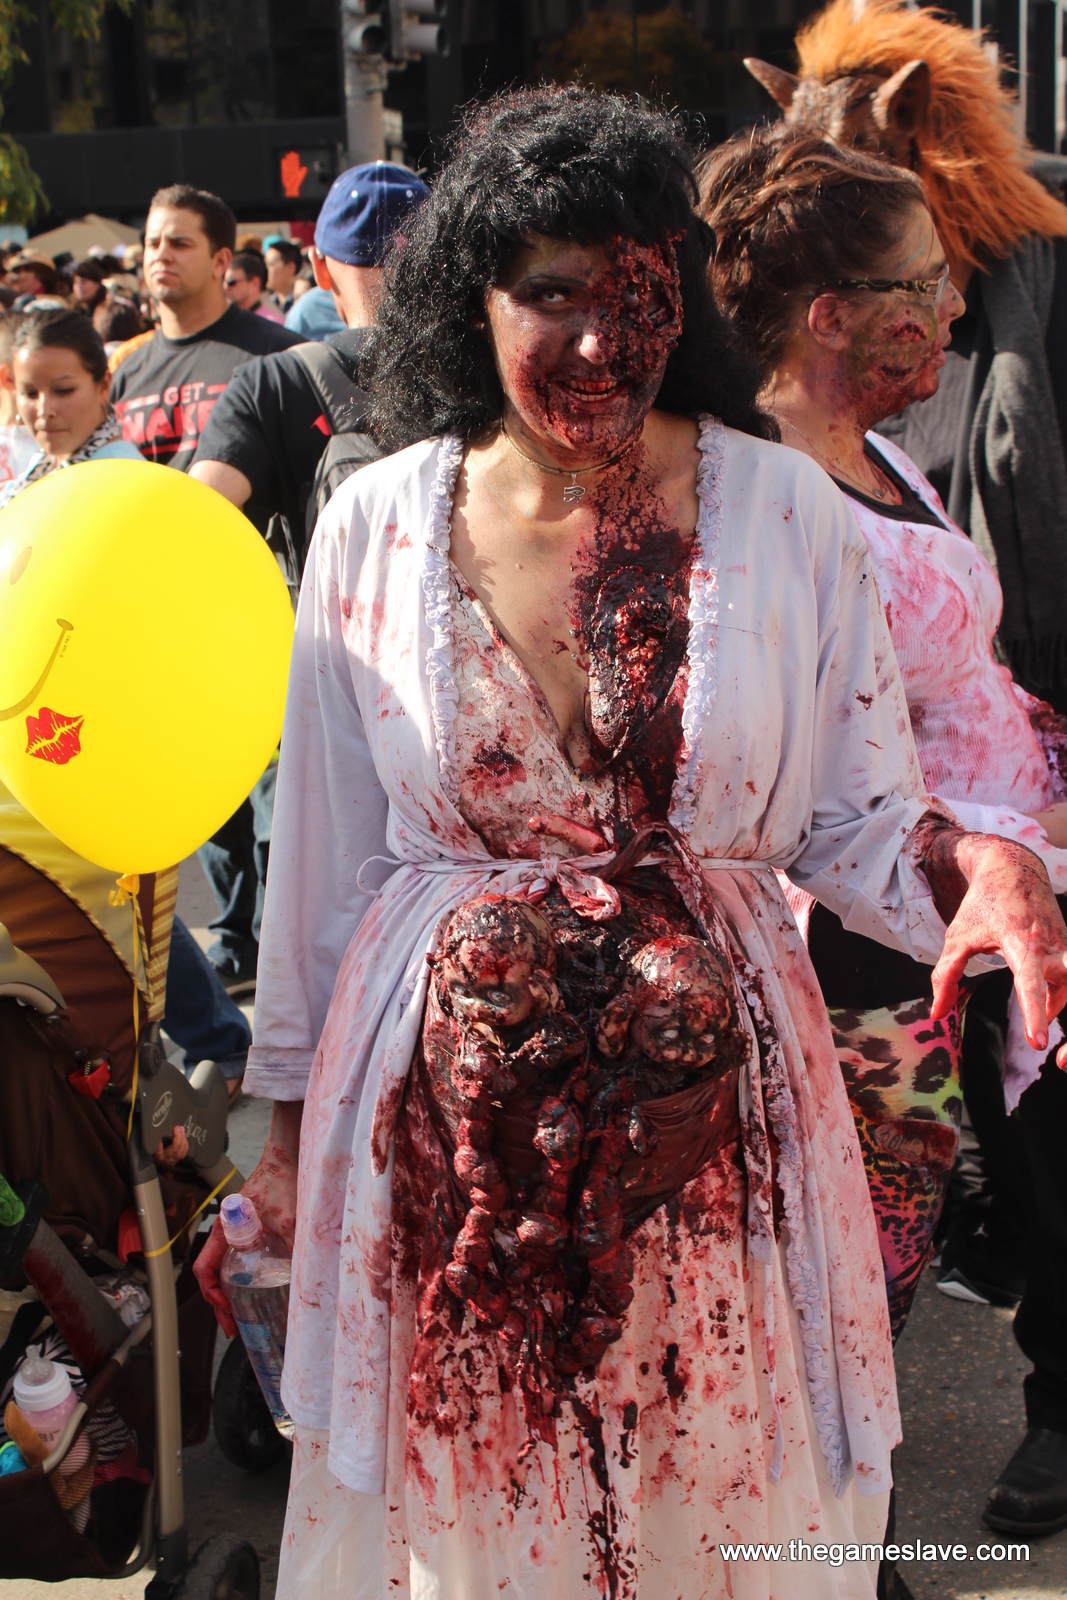 Denver Zombie Crawl 2014 (19).JPG